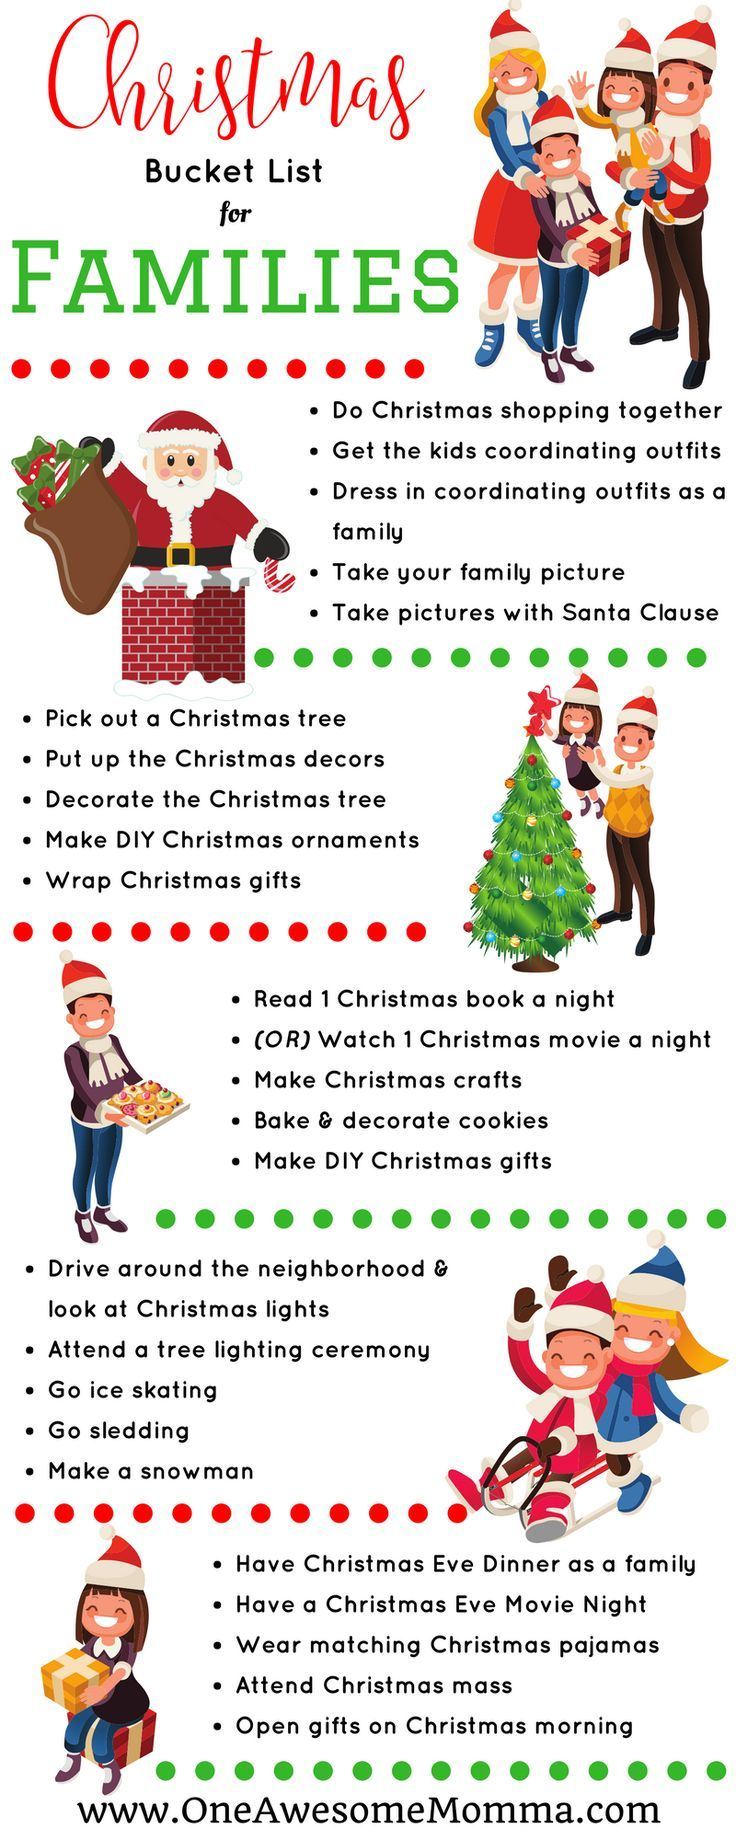 Are you looking for fun and memorable Christmas traditions to do with your family? Your family will surely have a lot of memories worth looking back on for years to come with these fun Christmas activities. #lifewithkids #christmastradition #christmas   memorable christmas ideas   christmas family tradition ideas   christmas family traditions   christmas activities   christmas activities for kids   christmas activities for families   fun christmas traditions   christmas bucket list family